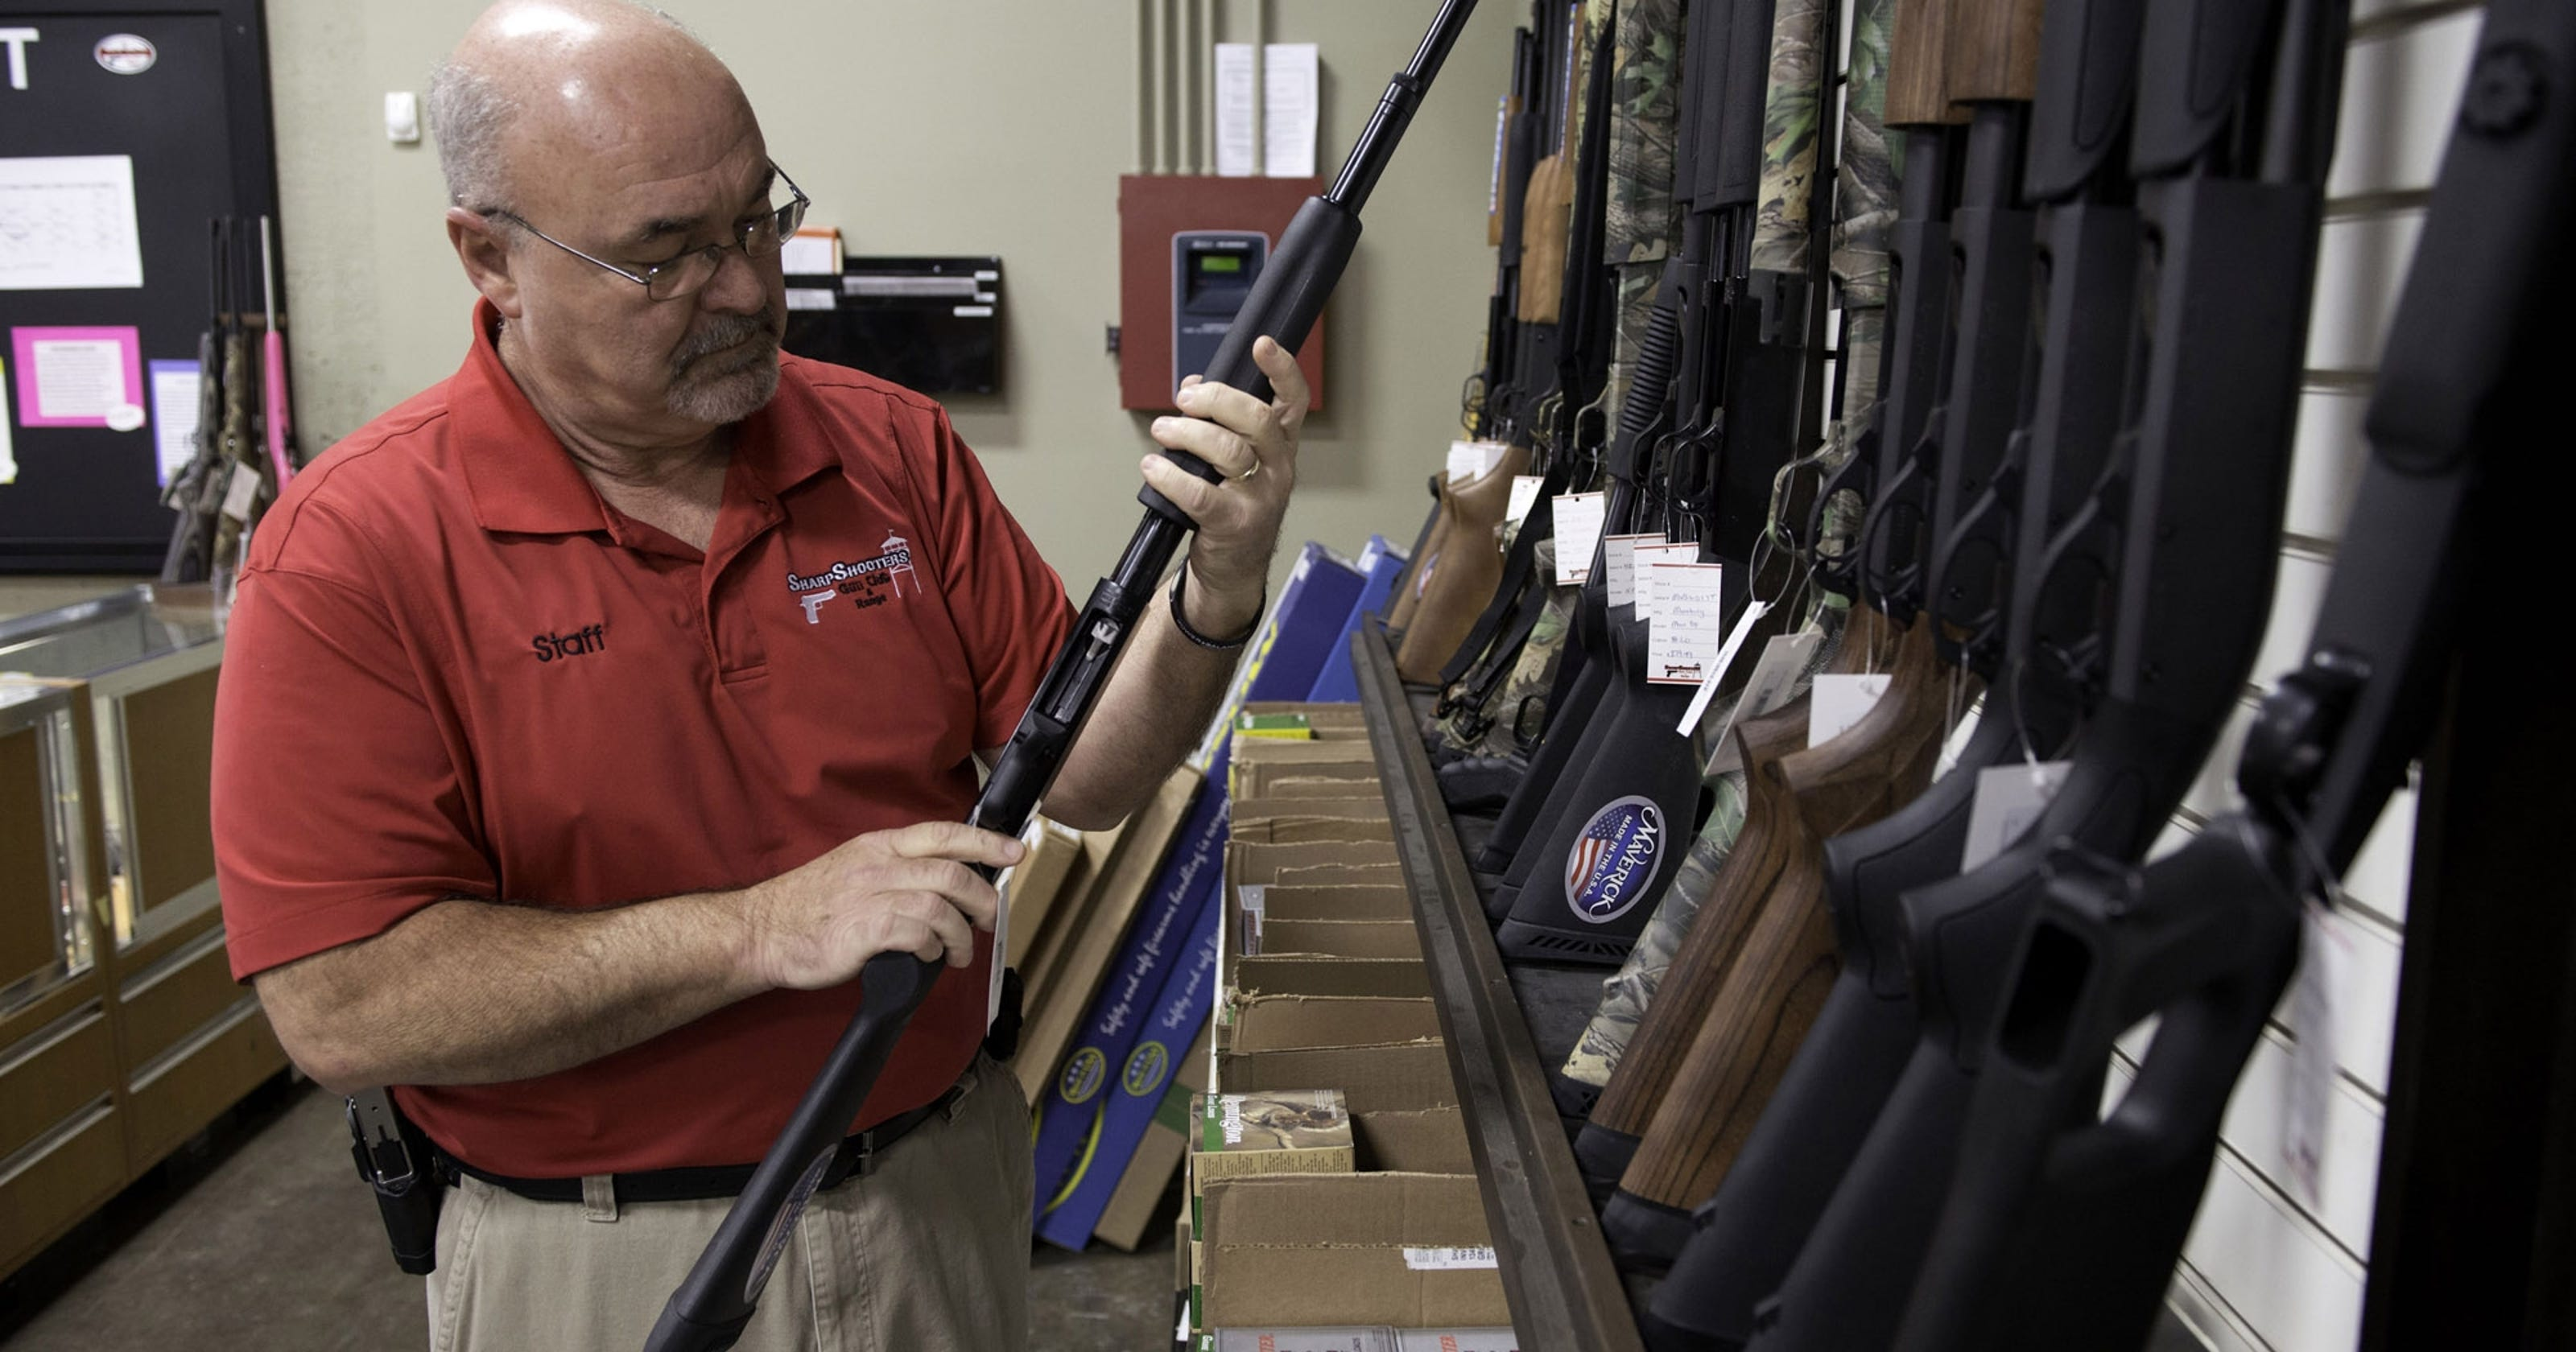 More states look for ways to control gun laws